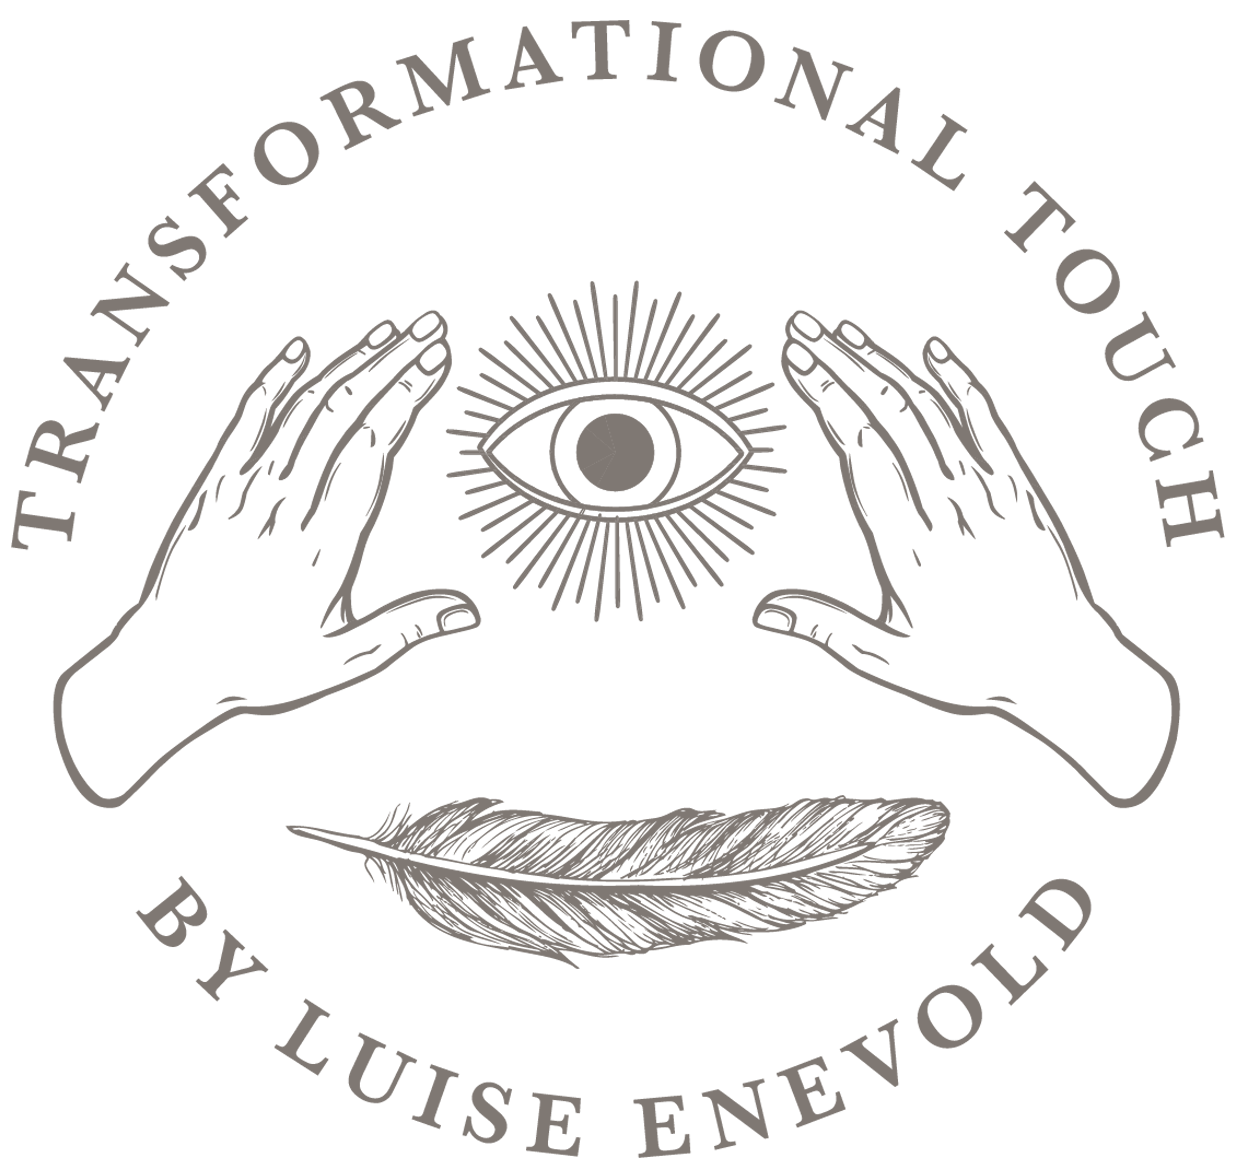 TRANSFORMATIONAL TOUCH by Luise Enevold